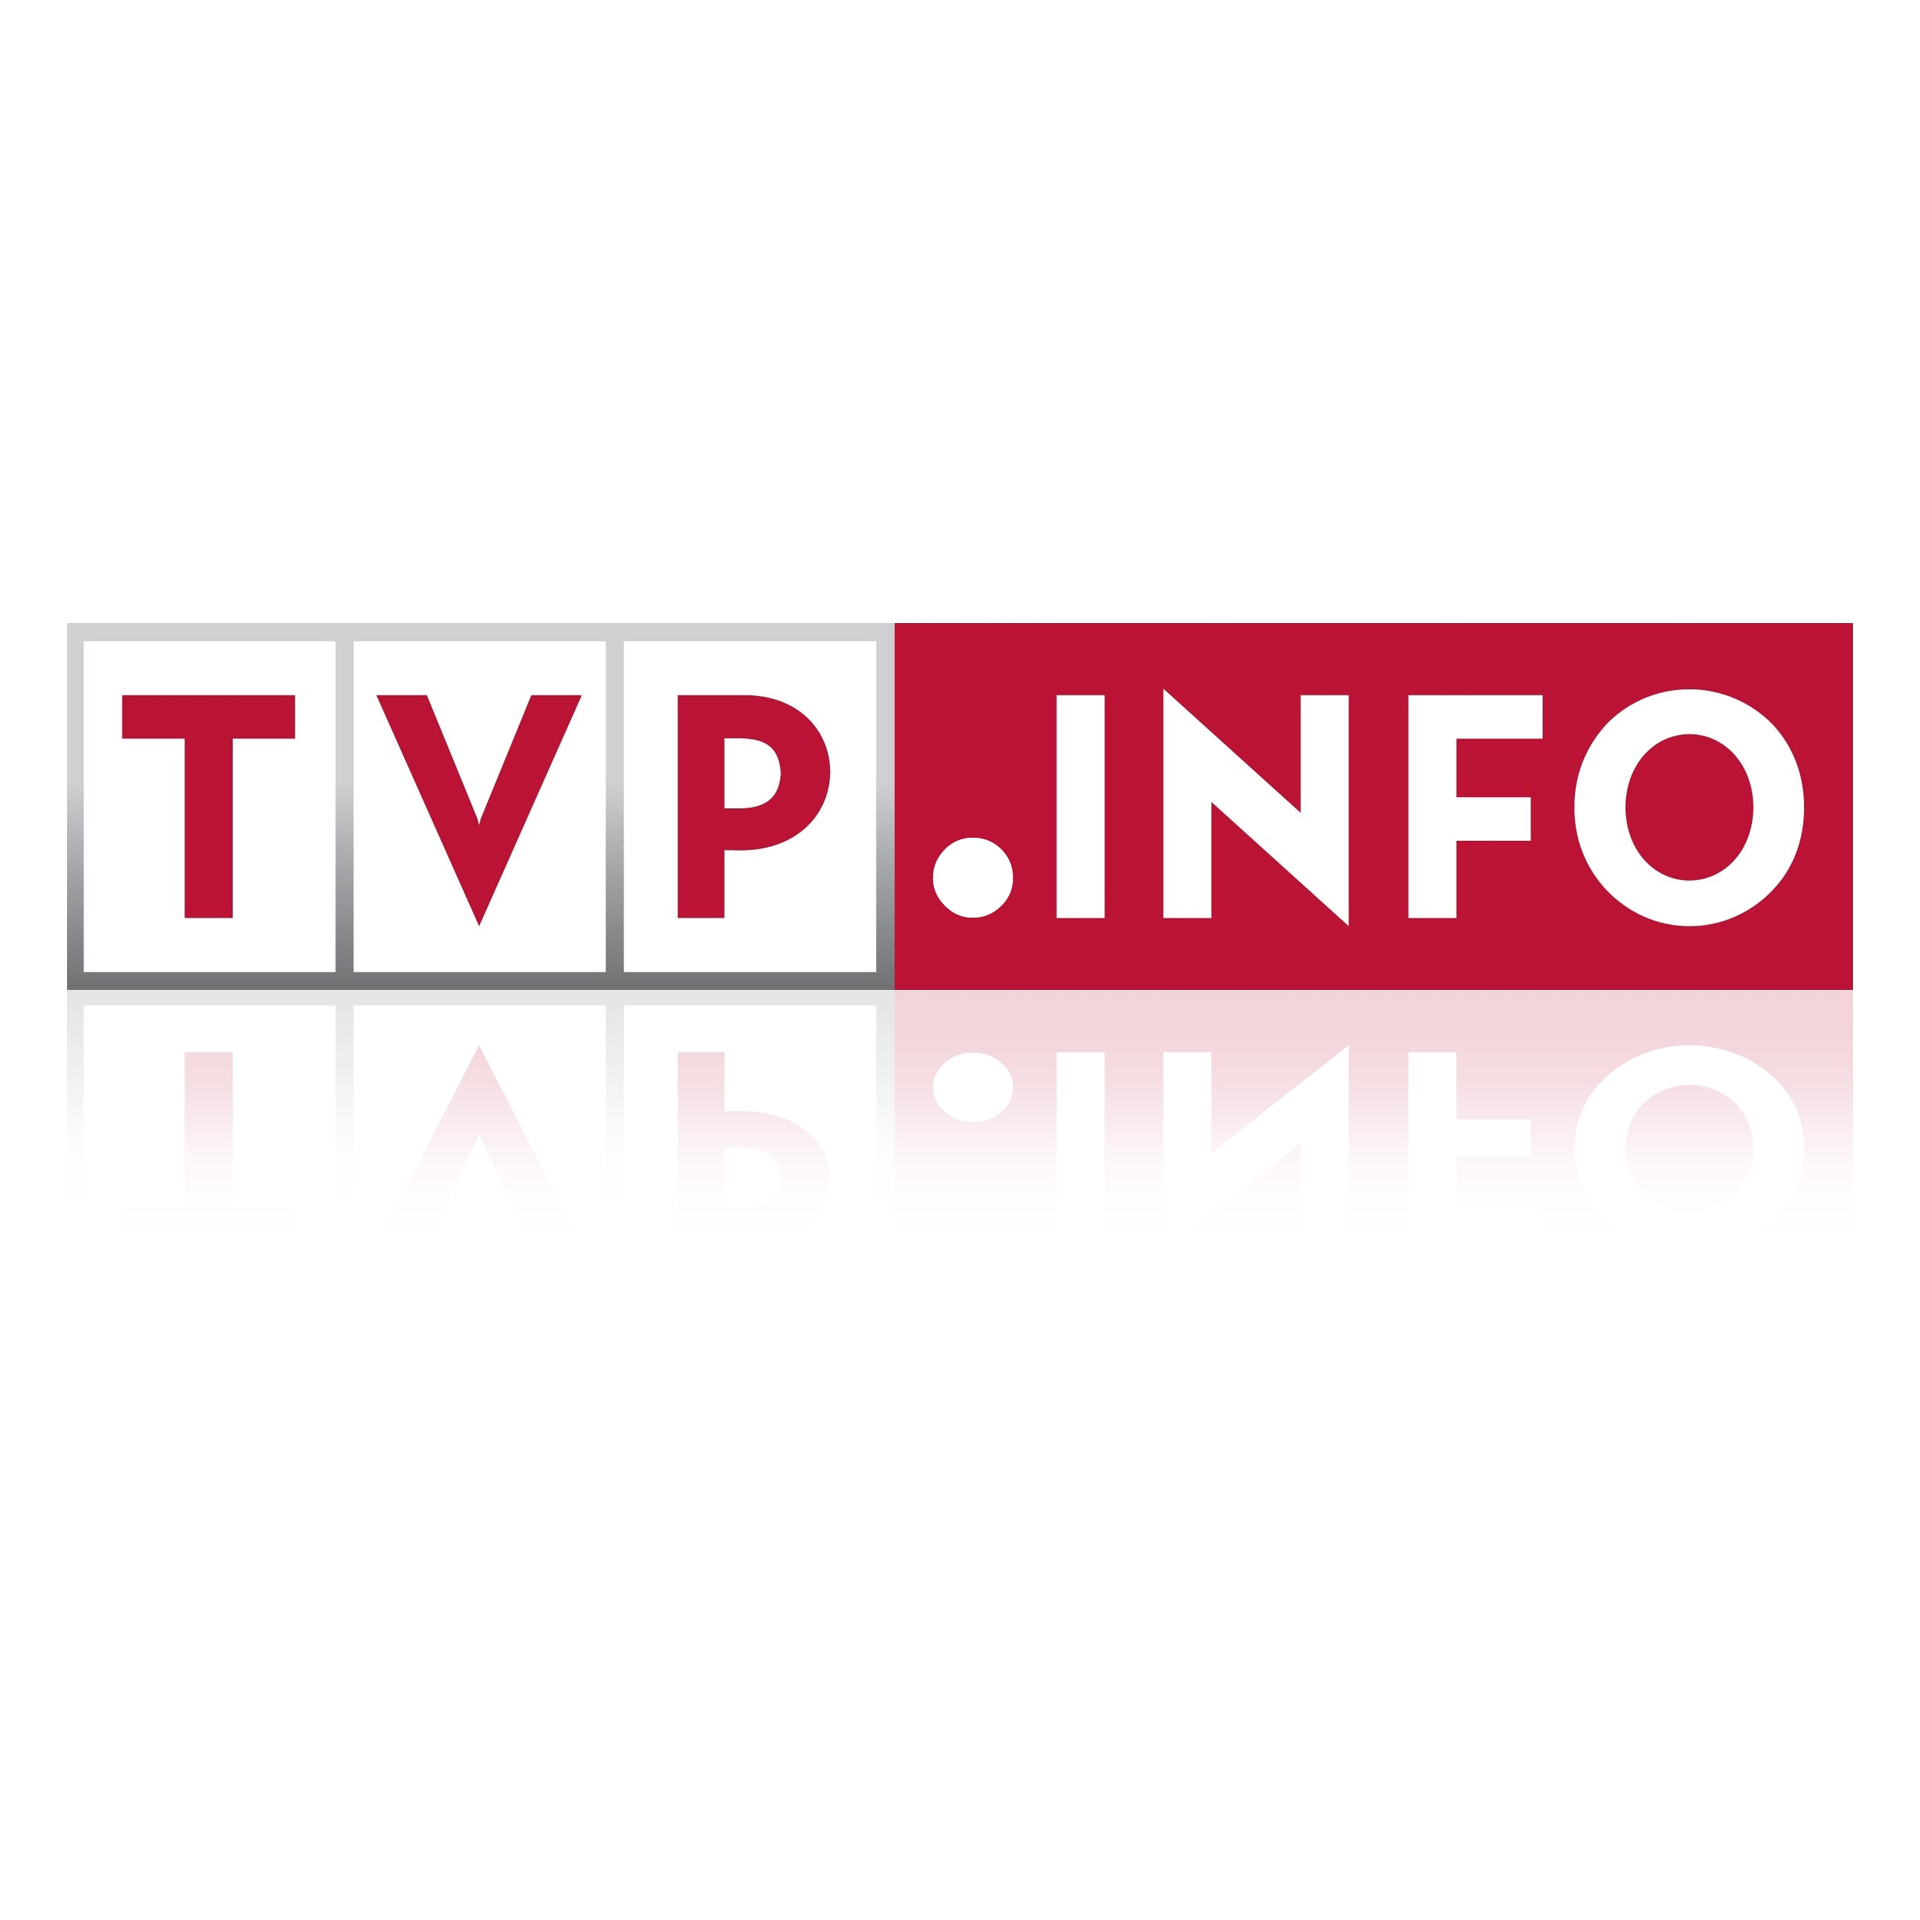 Warsaw Institute cited by TVP INFO